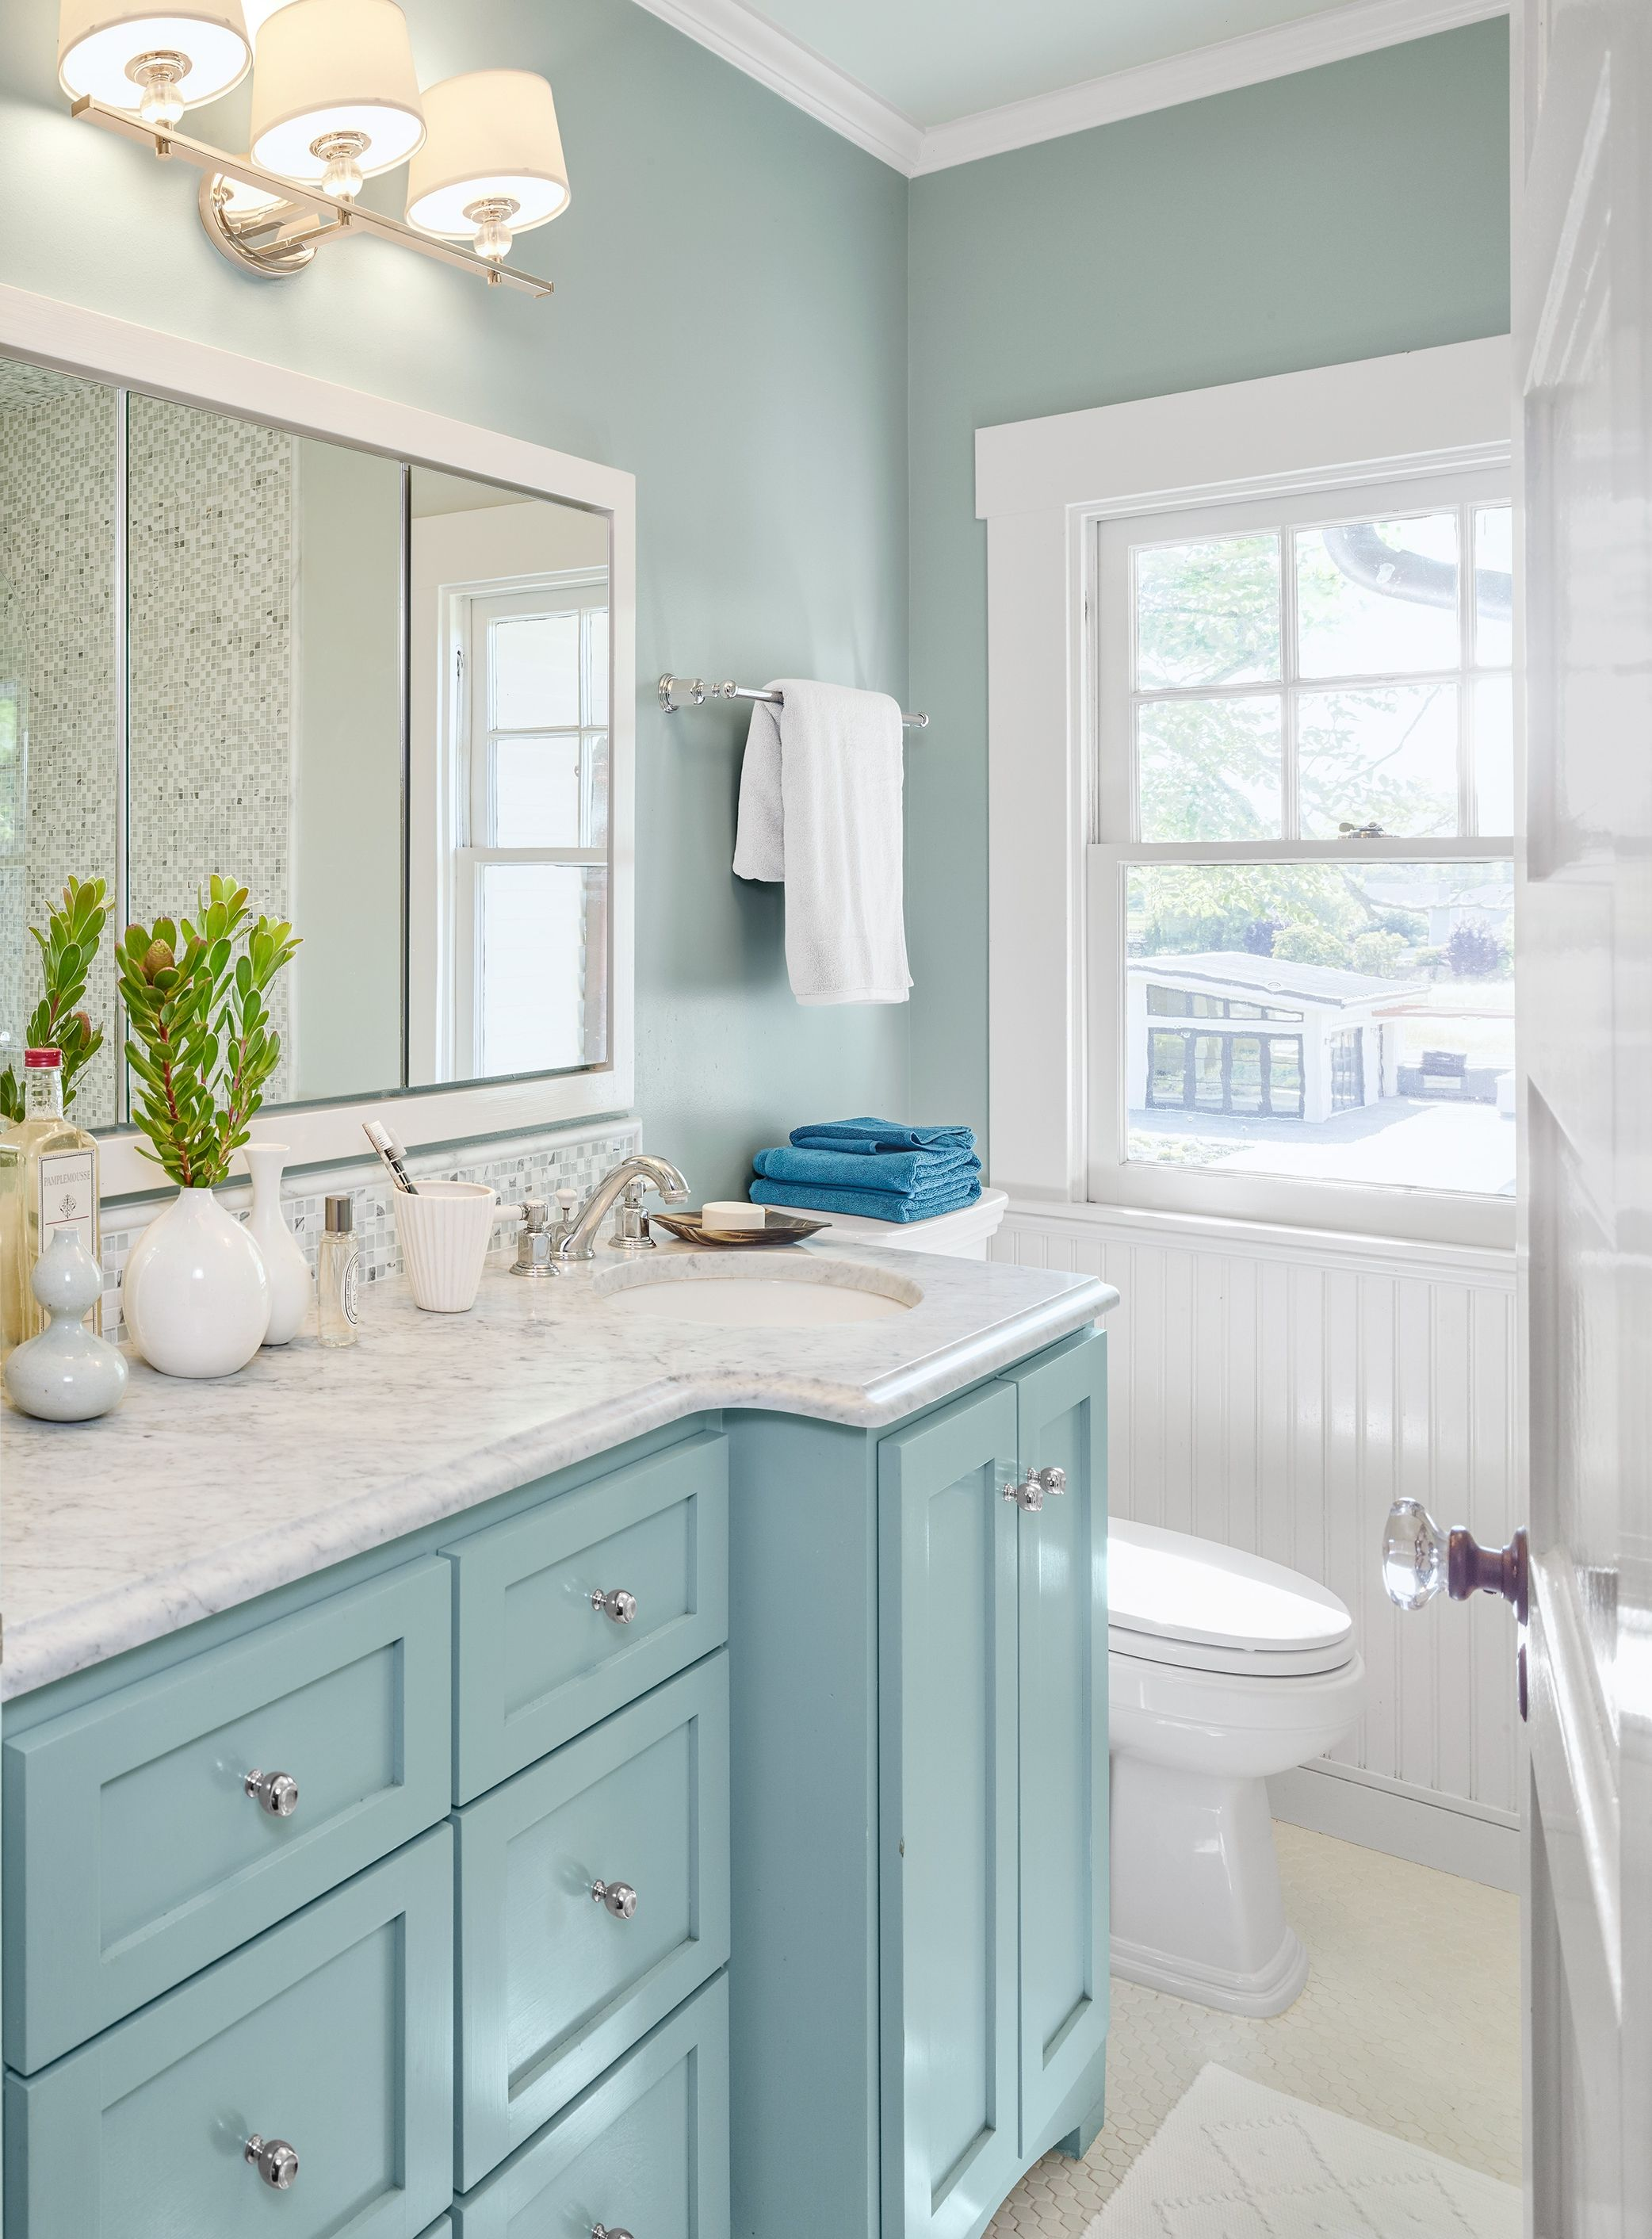 Bright Ideas For A Colorful Whole House Remodel Bathrooms